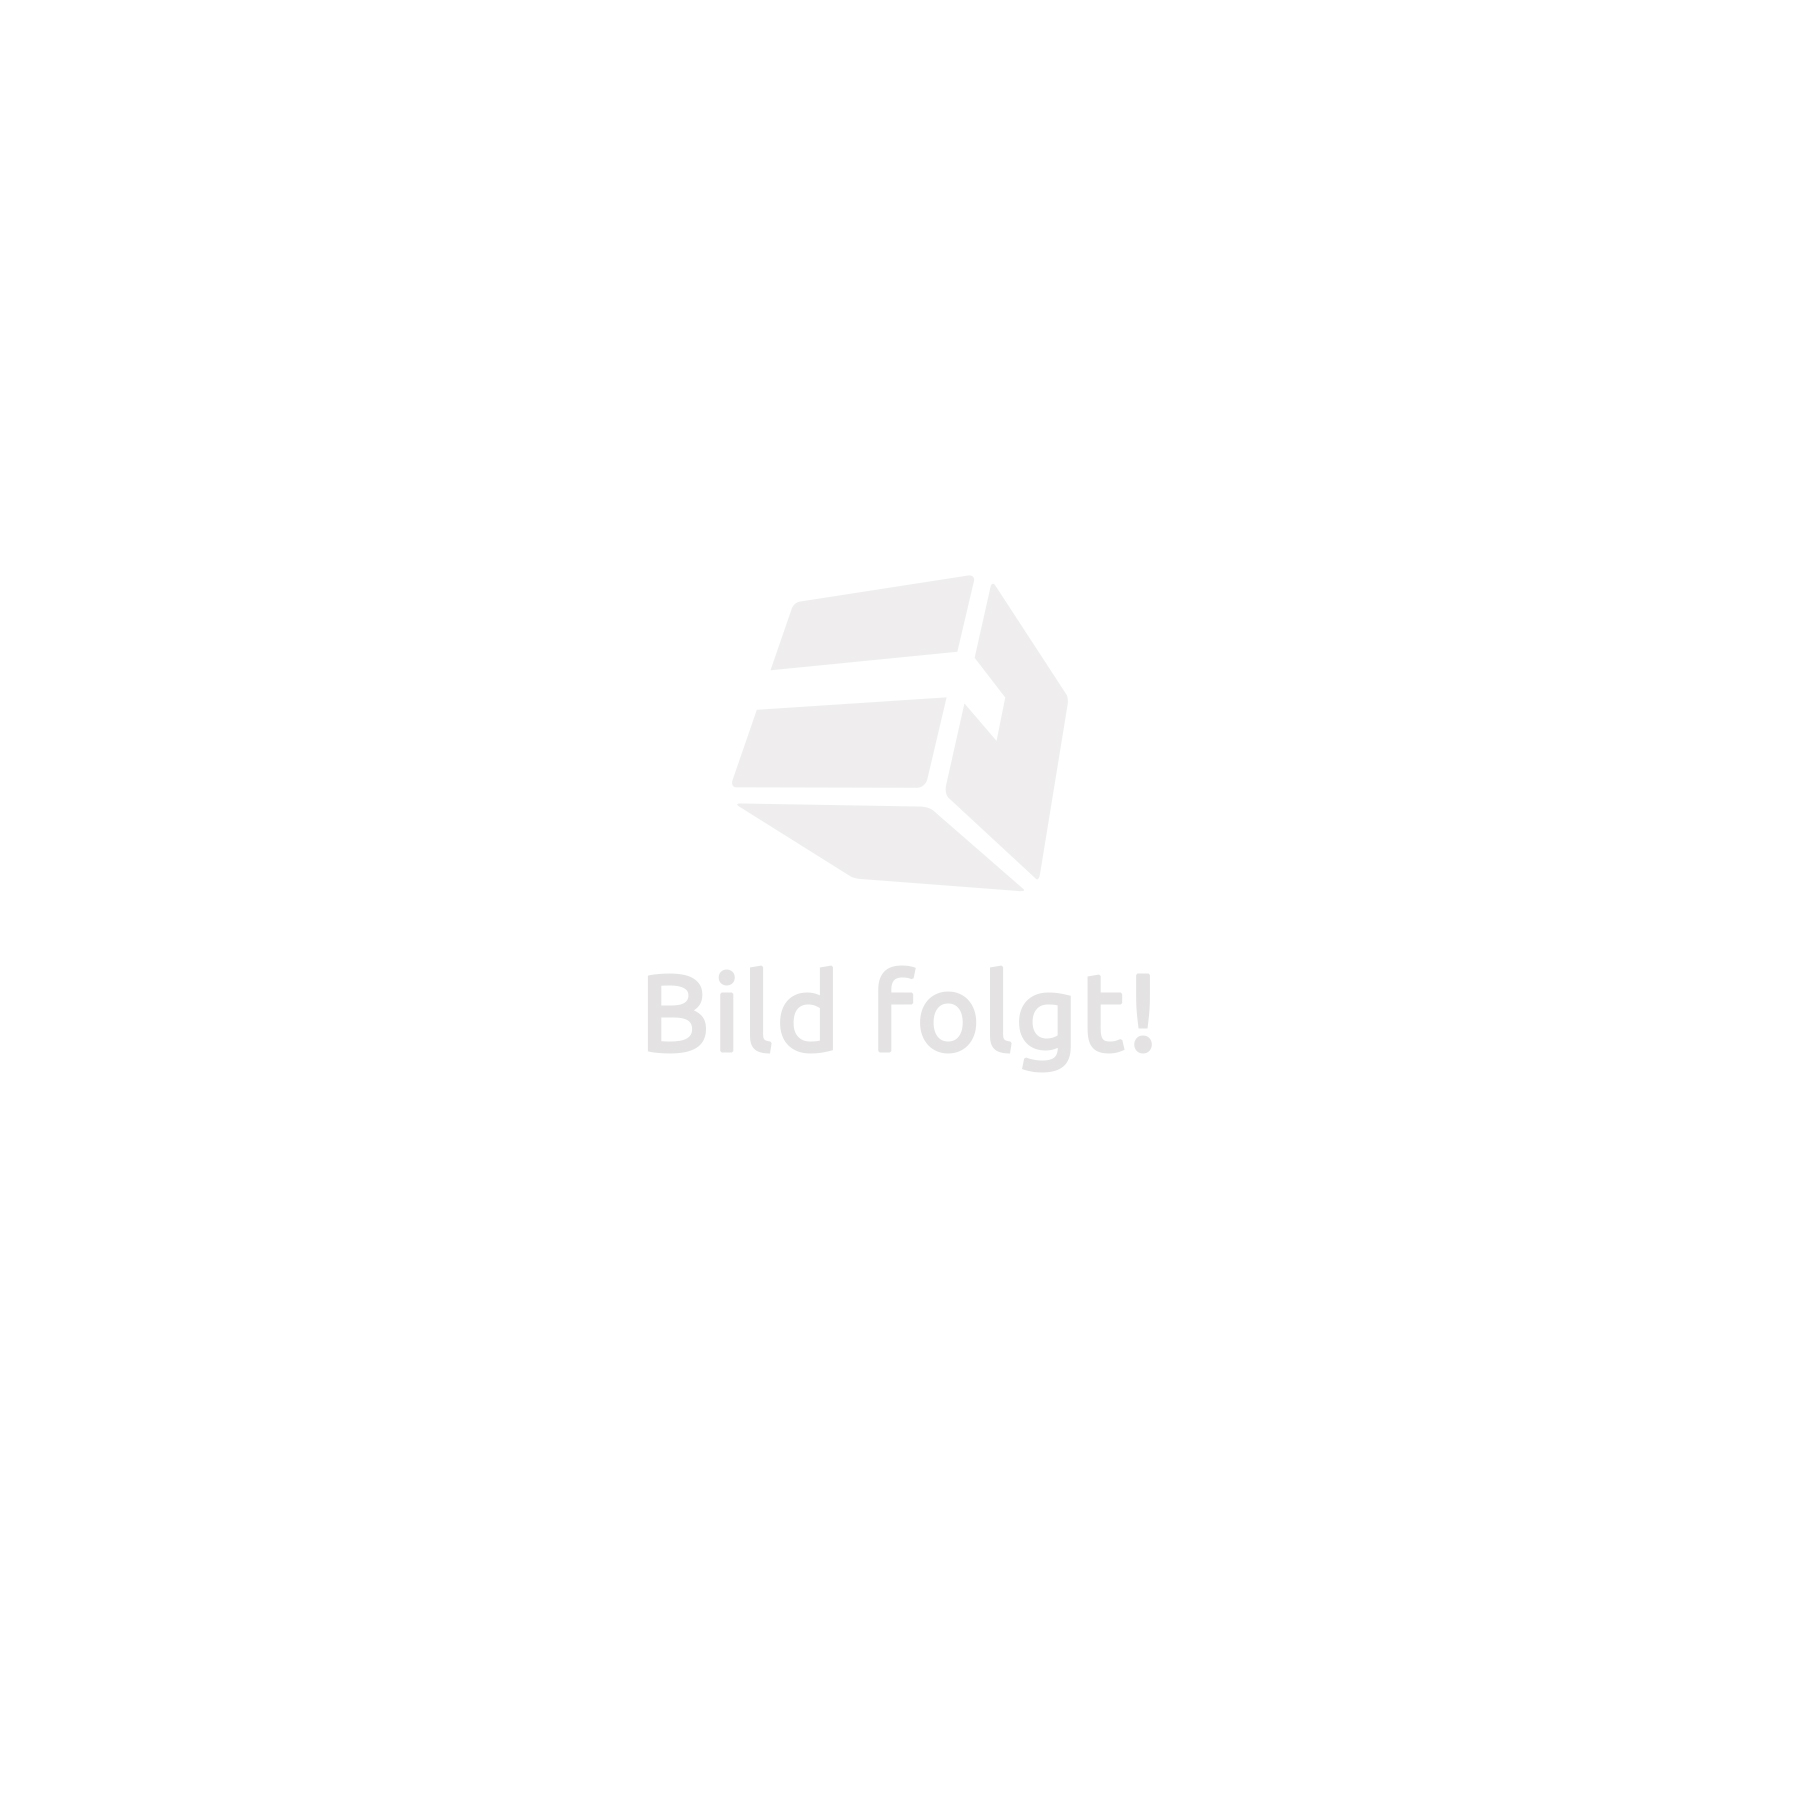 Universal 320 cm mounting strap set to attach hammocks to trees